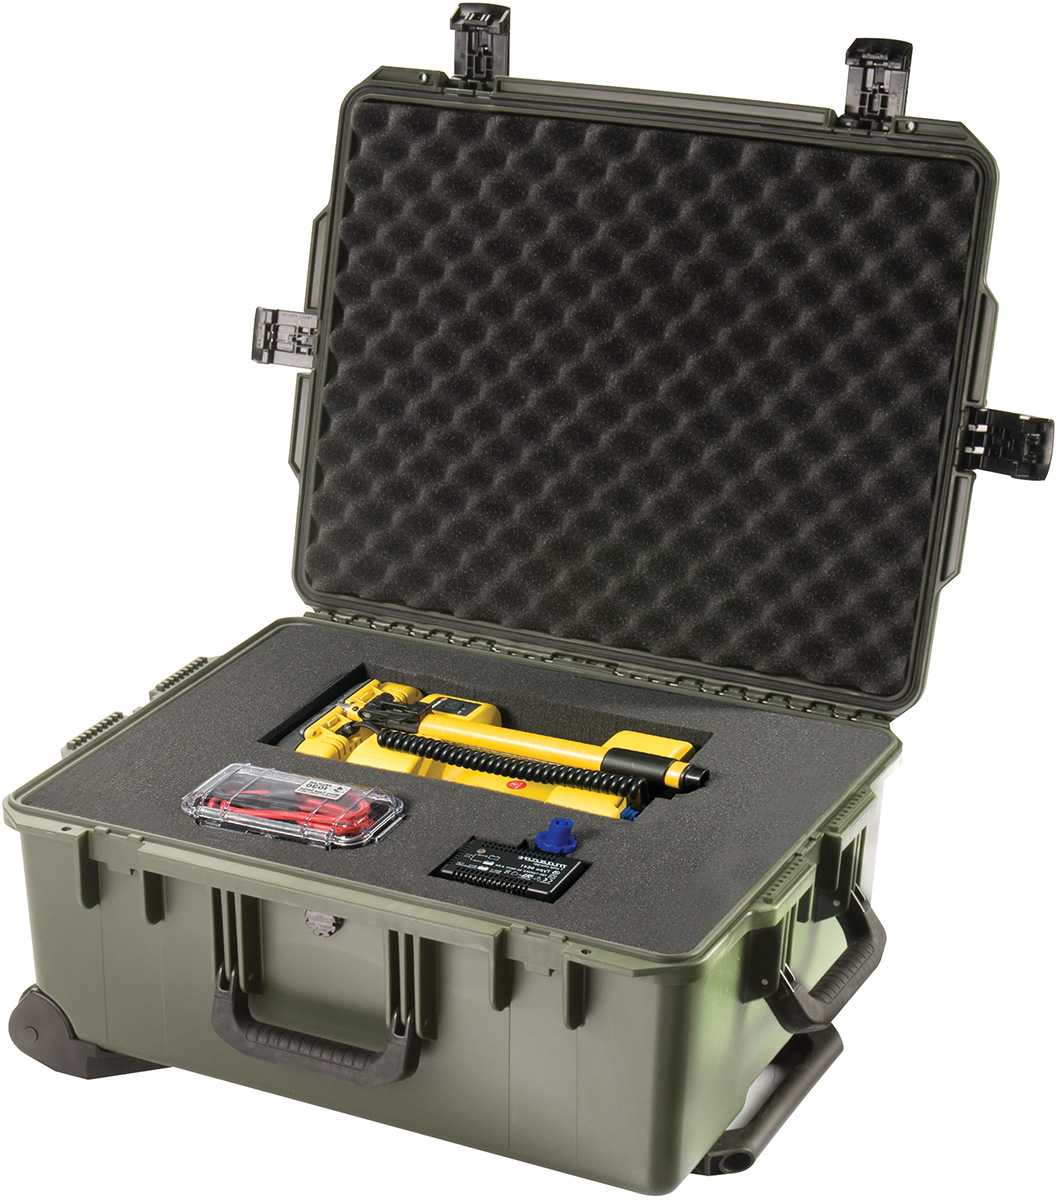 pelican peli products iM2720 storm travel rolling large hardcase